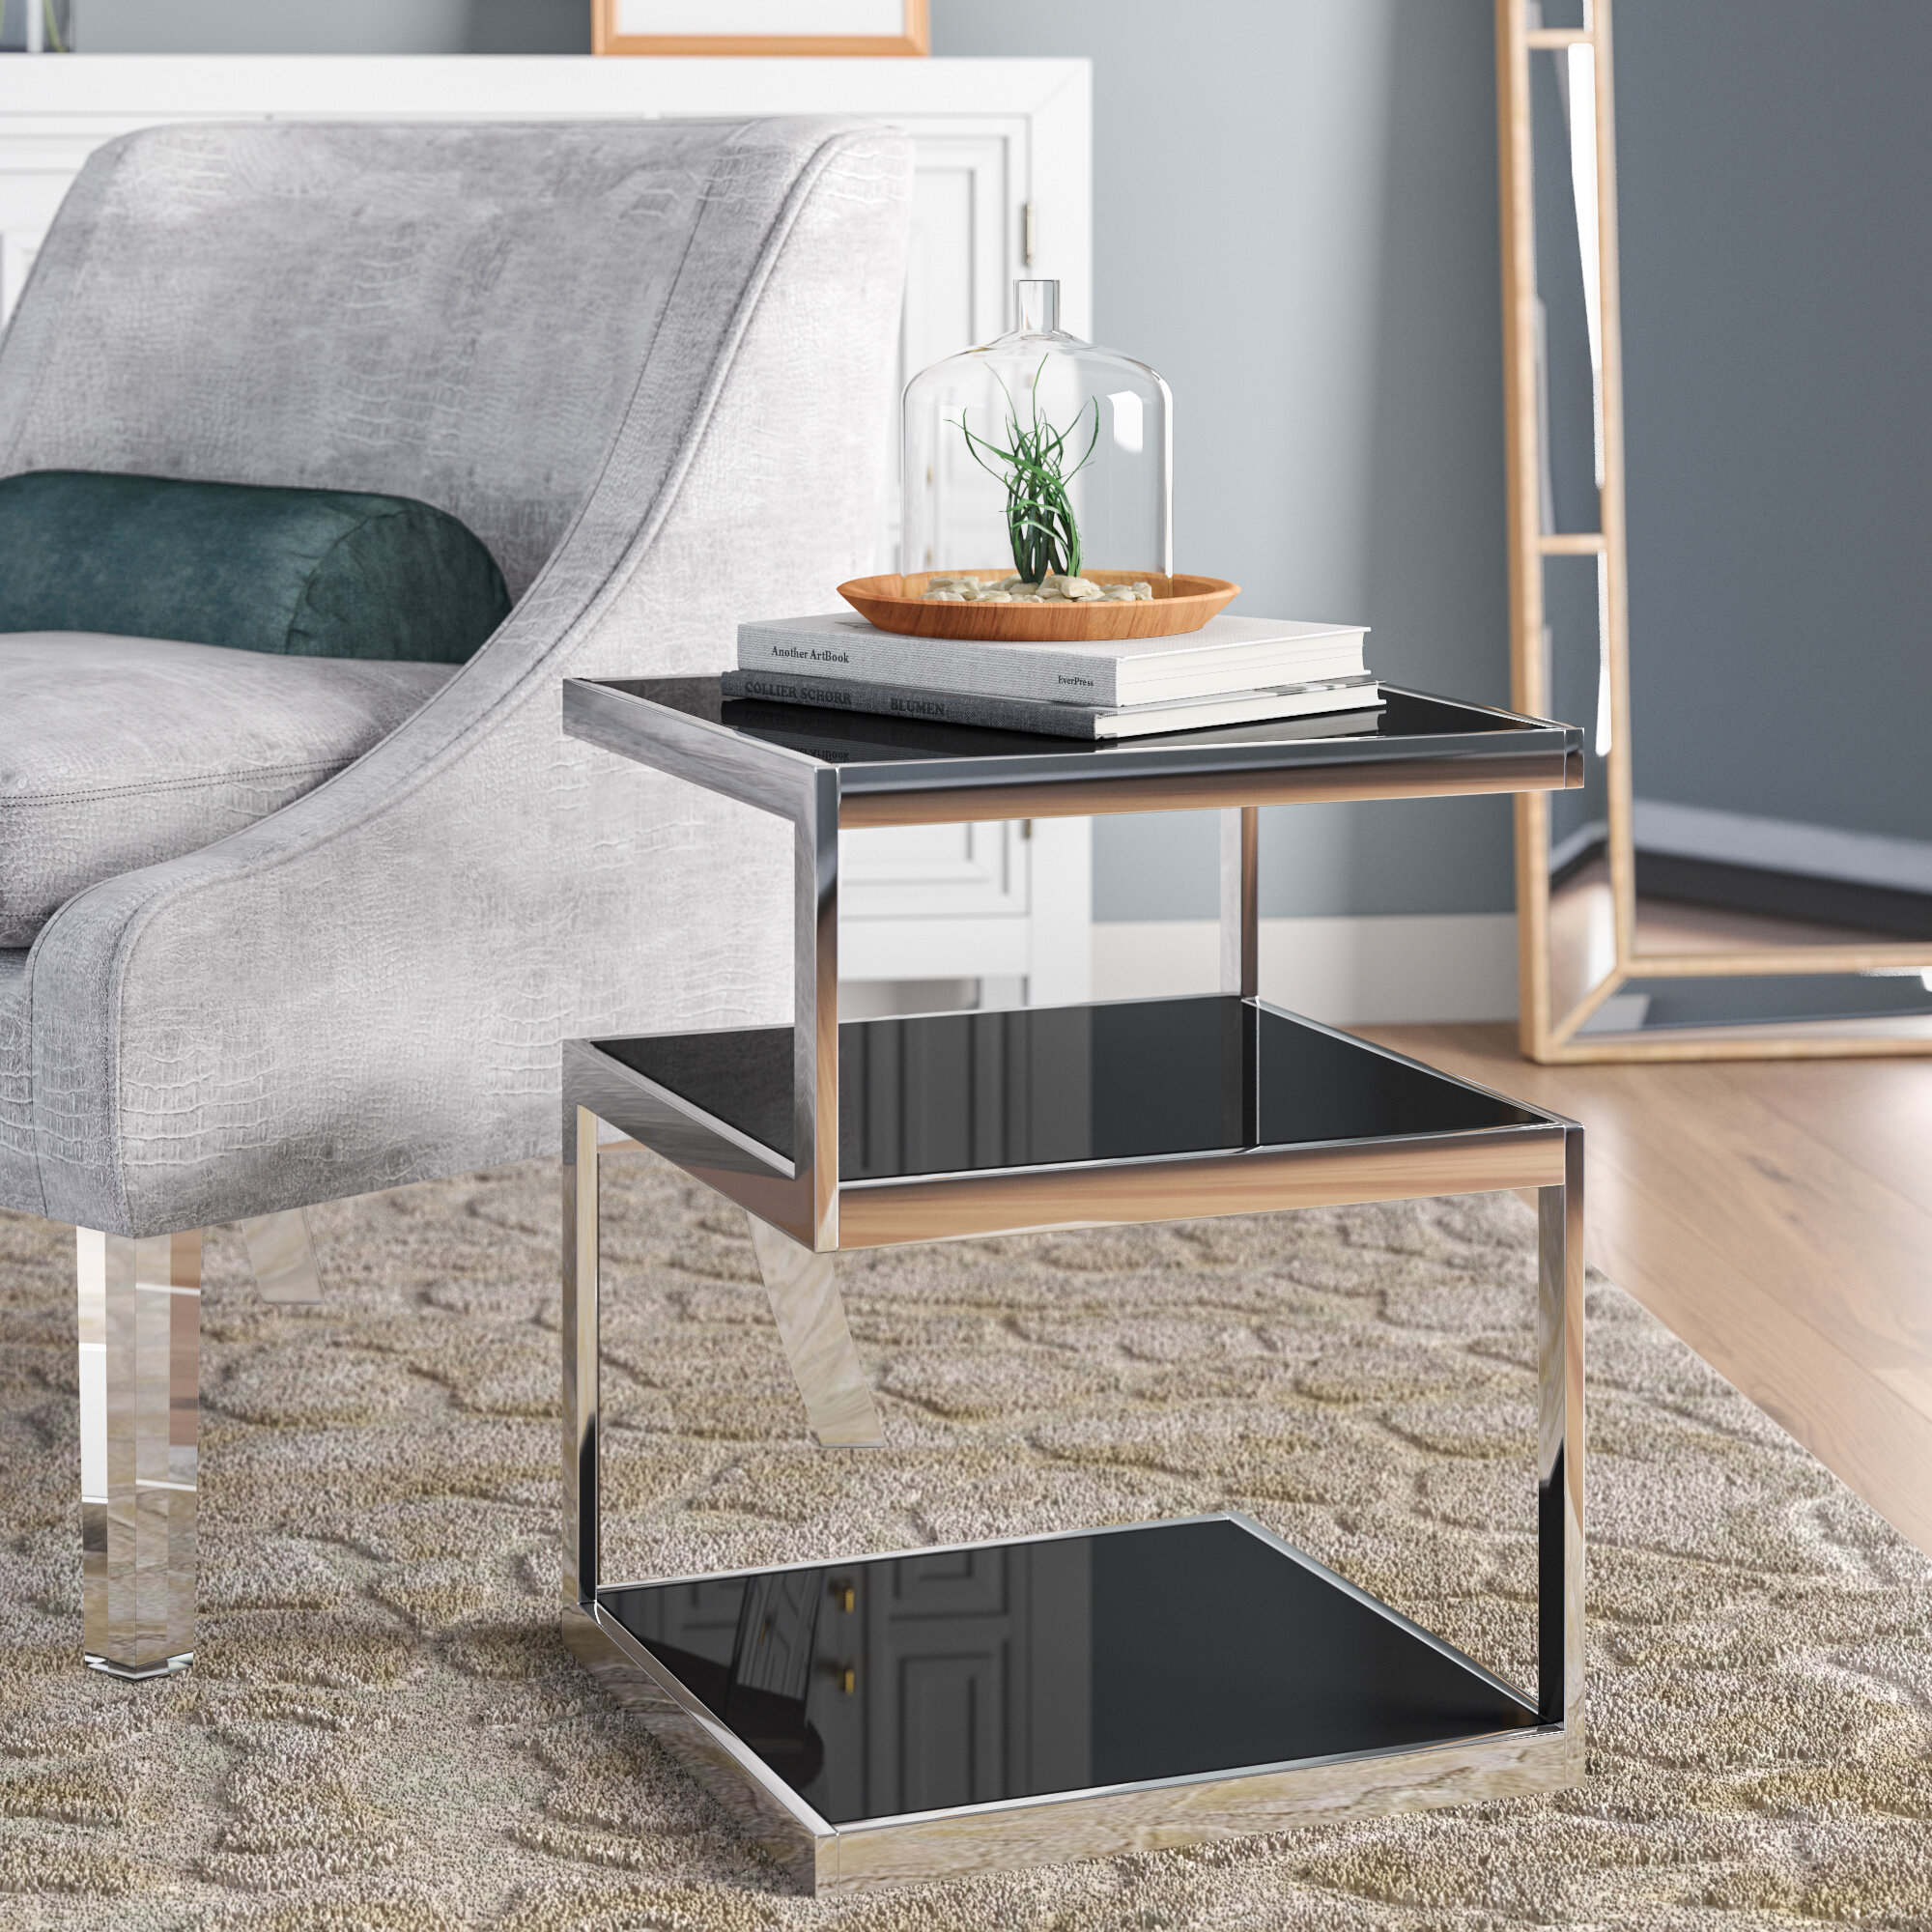 Magnificent Glass End Tables Youll Love In 2019 Wayfair Download Free Architecture Designs Xaembritishbridgeorg